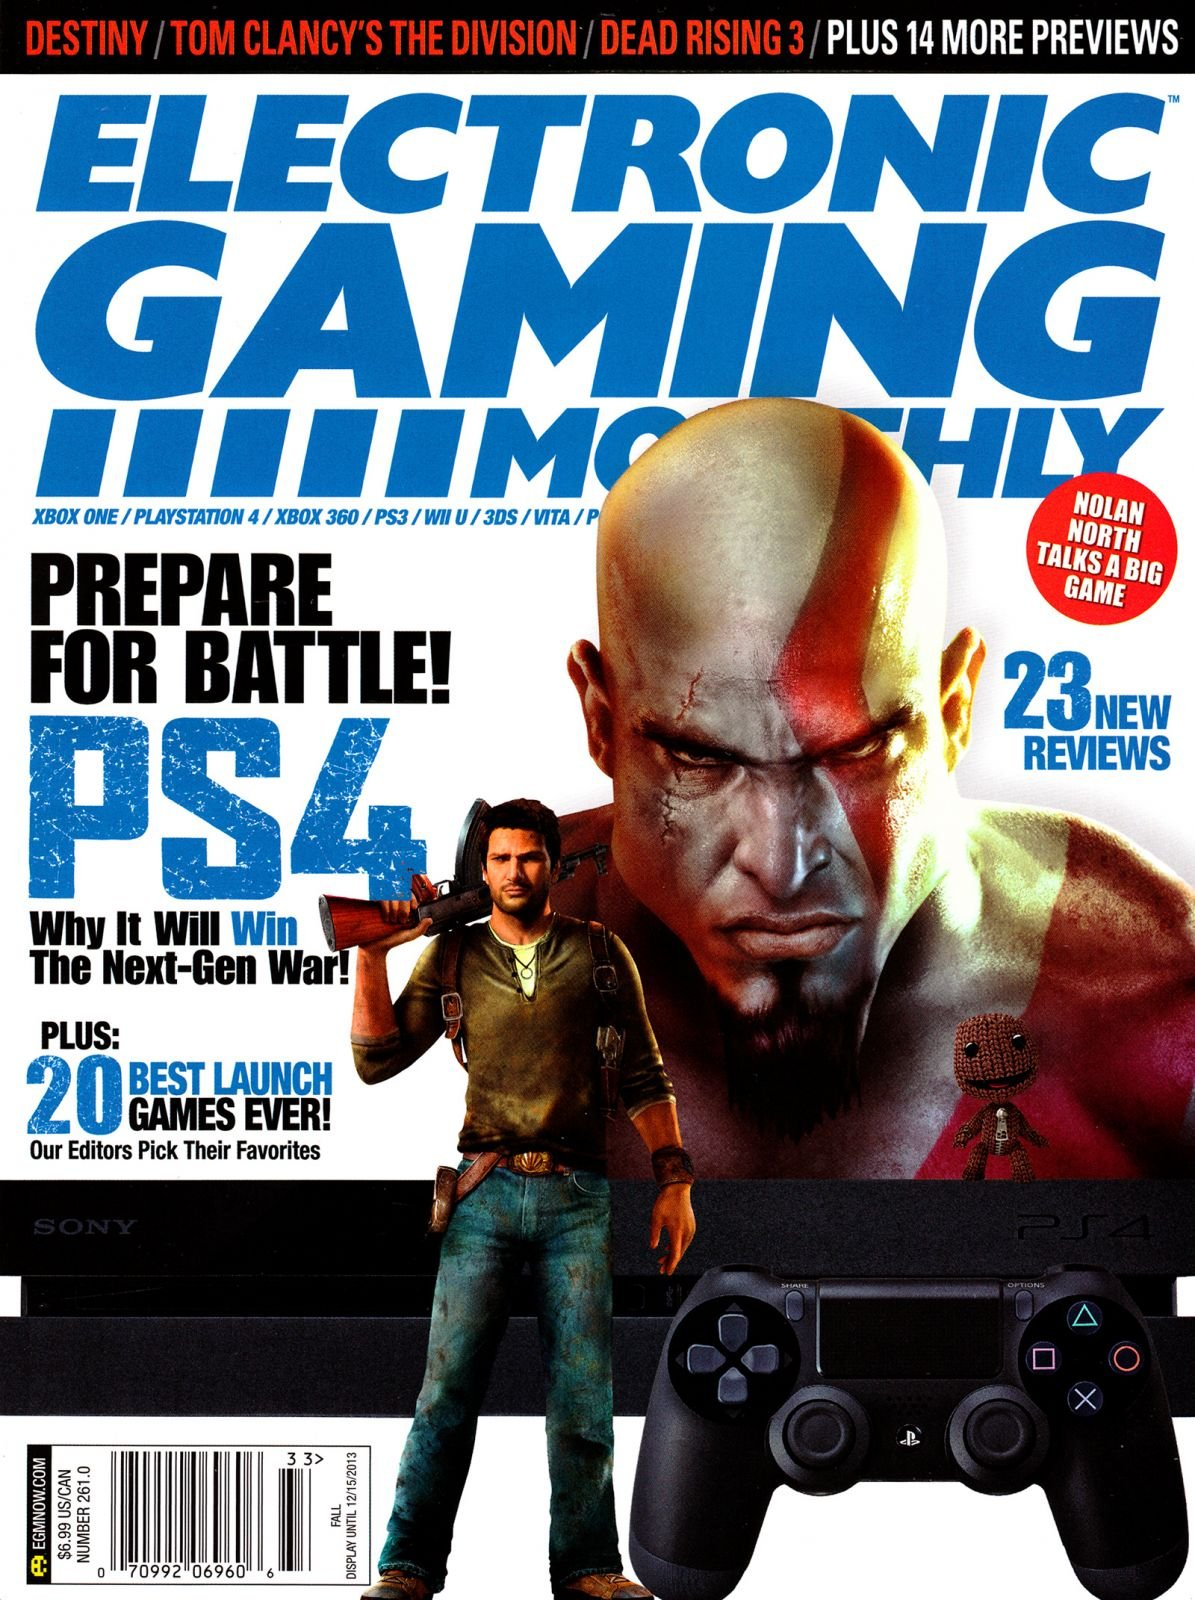 Electronic Gaming Monthly Issue 261 Fall 2013 (Cover 2 of 2)